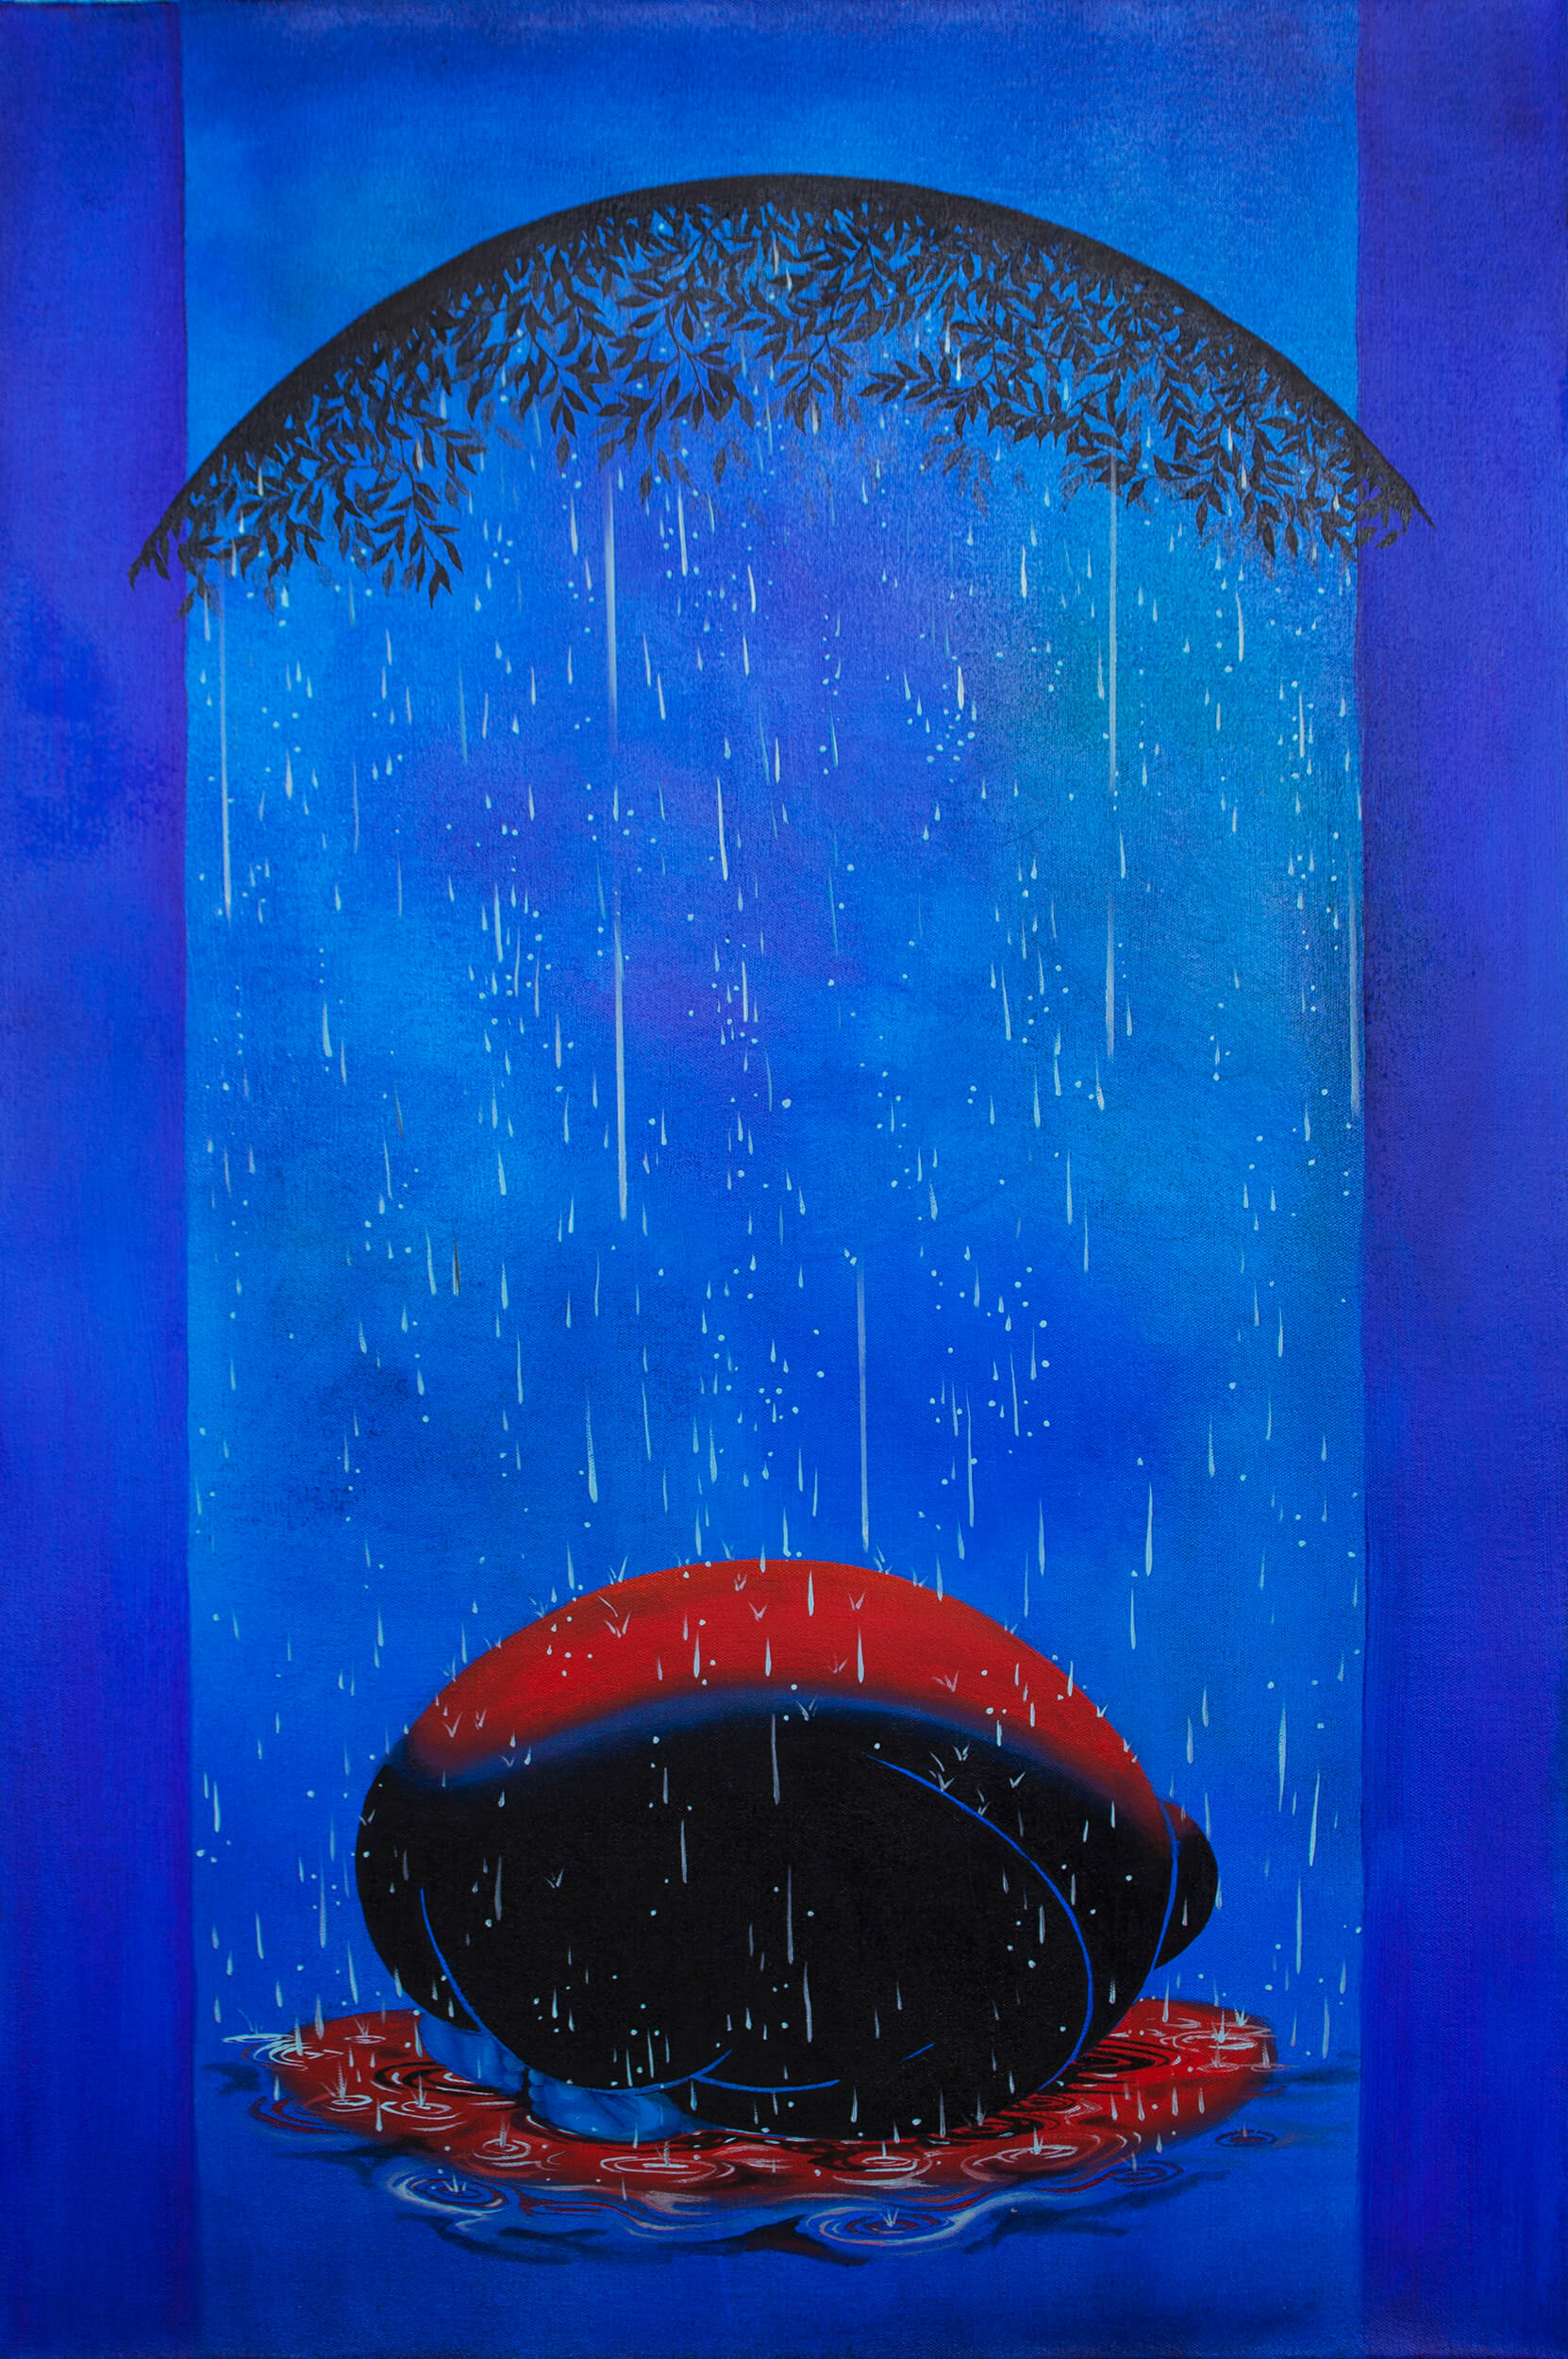 Brittney Leeanne Williams Rain 1, 2021 oil on canvas 36 x 24 in. (91.4 x 61 cm.)